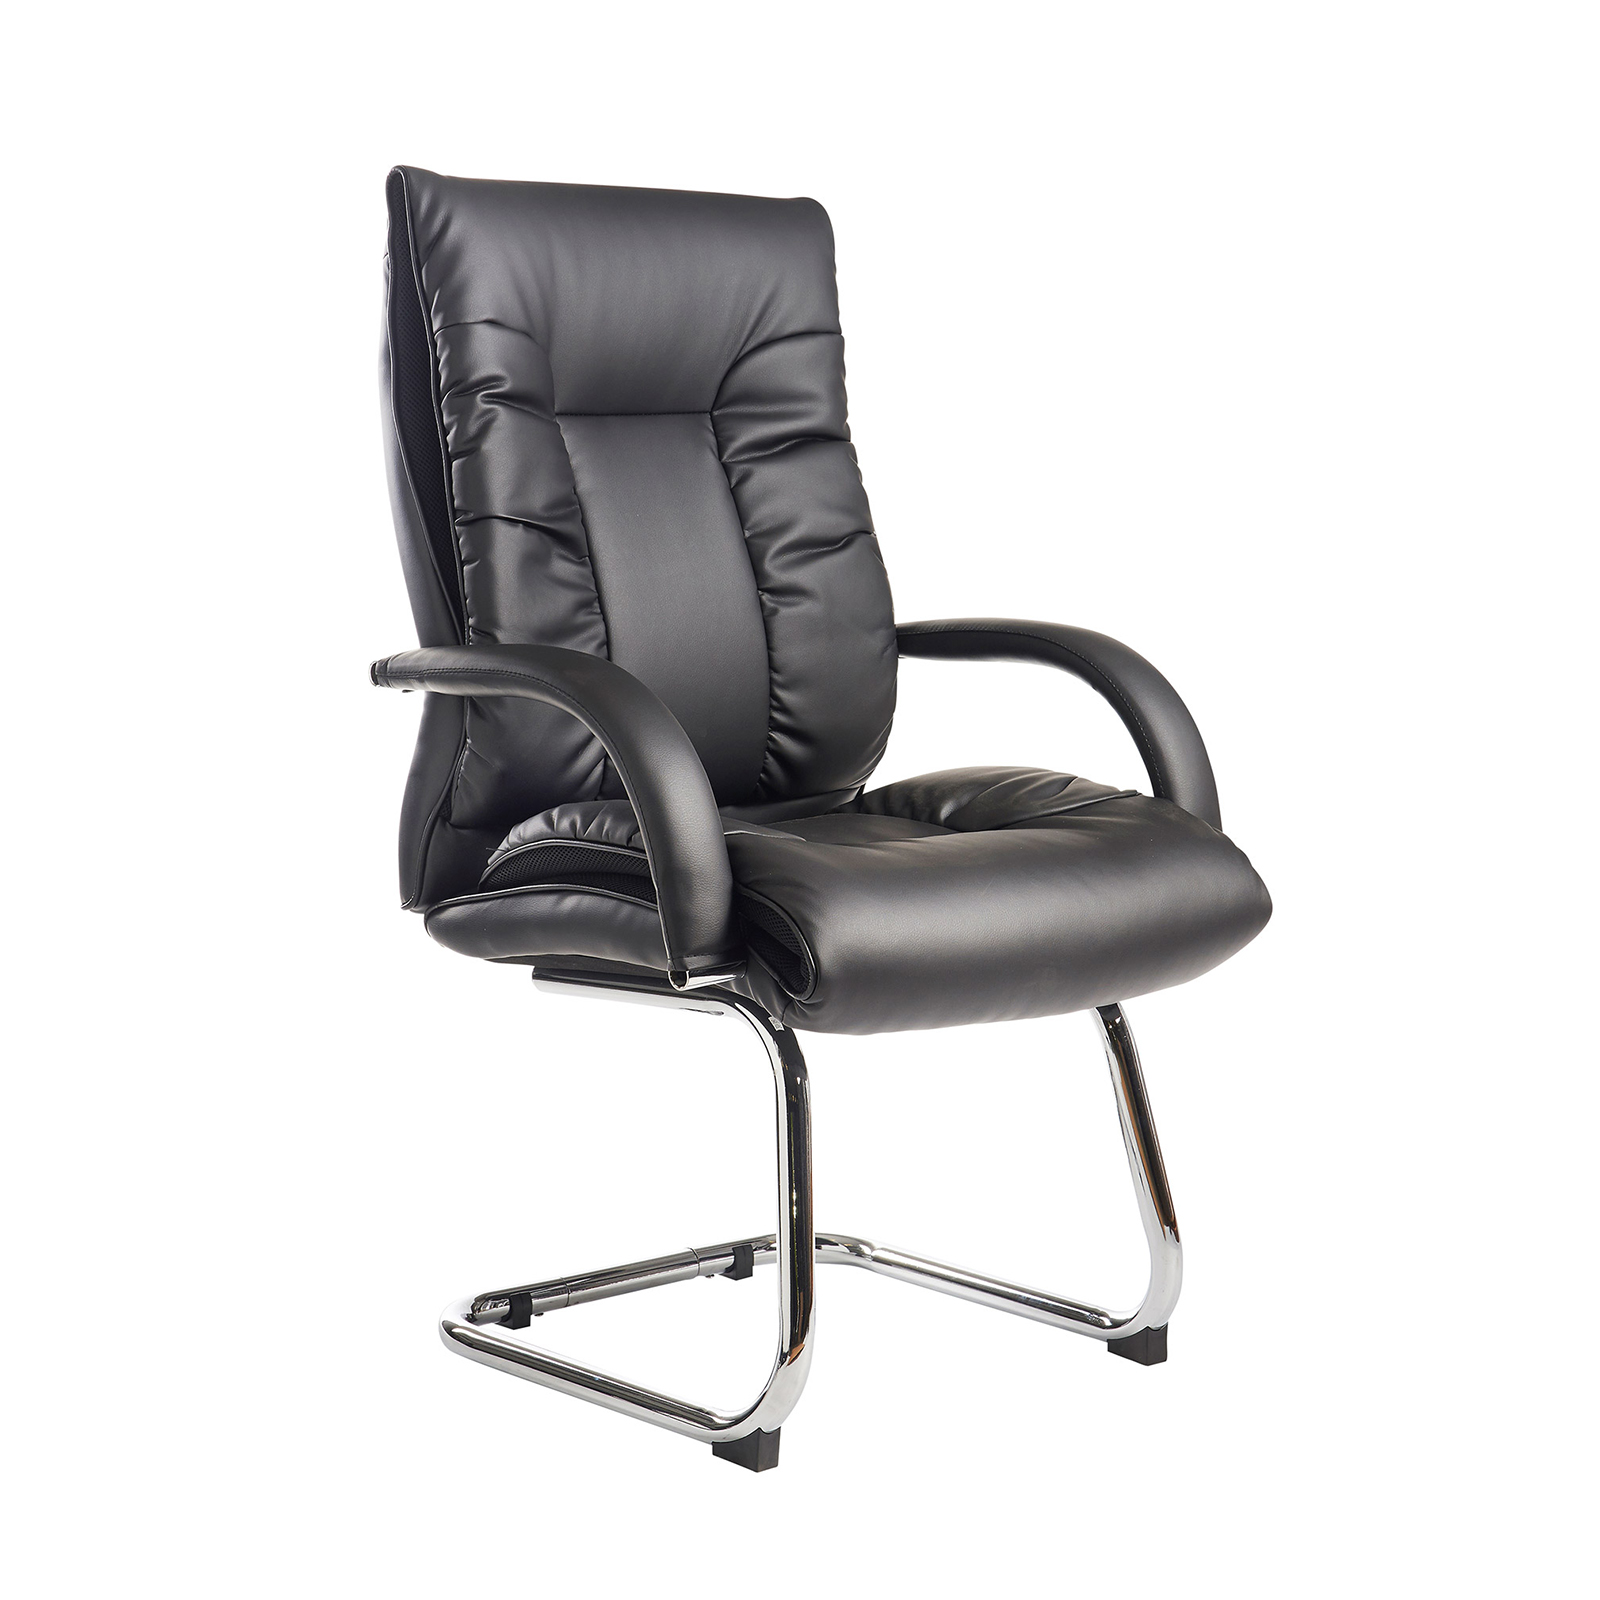 Boardroom / Meeting Derby high back visitors chair - black faux leather